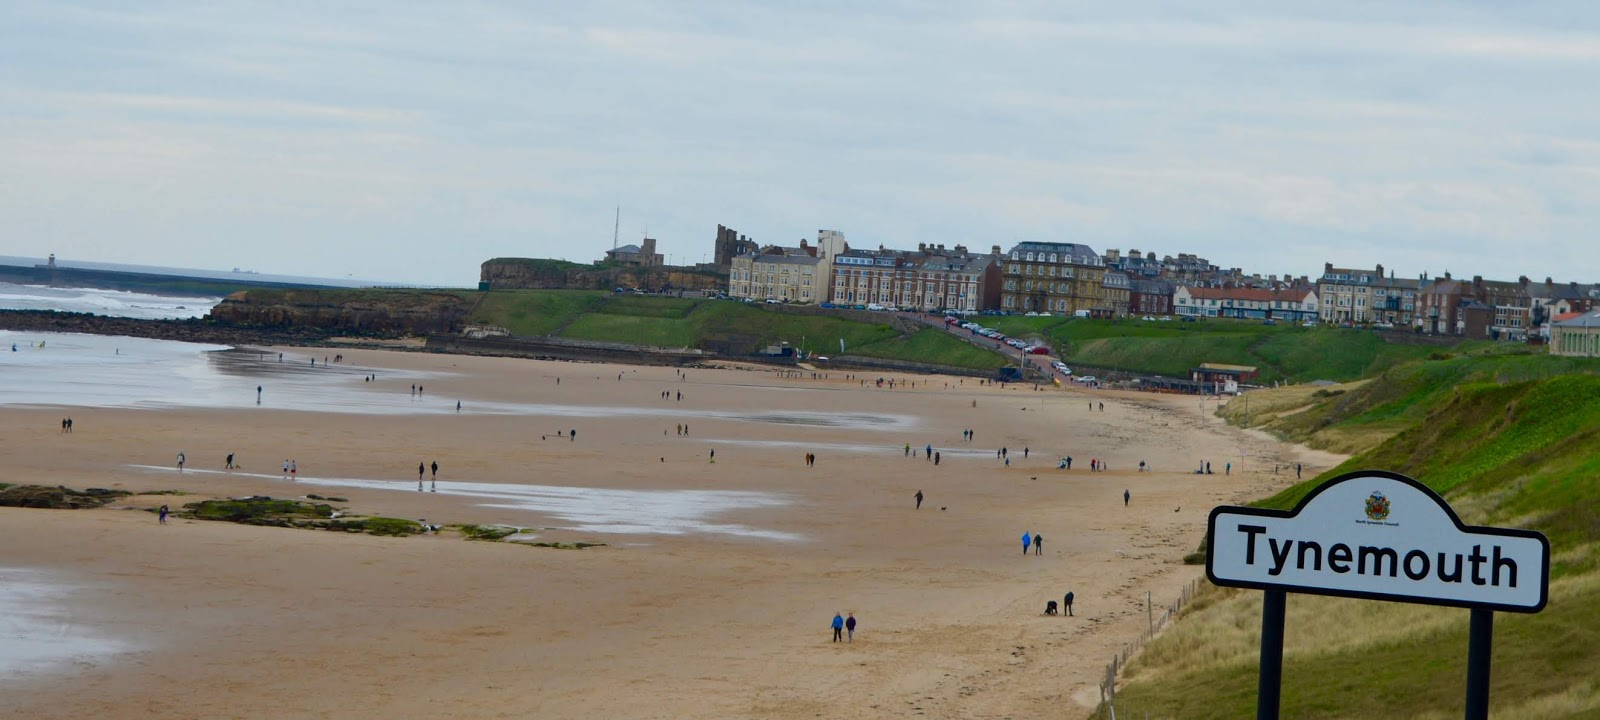 The Seasider Open Top Bus Tour Whitley Bay | Tickets, Prices, Timetables & Where To Visit - Tynemouth Longsands